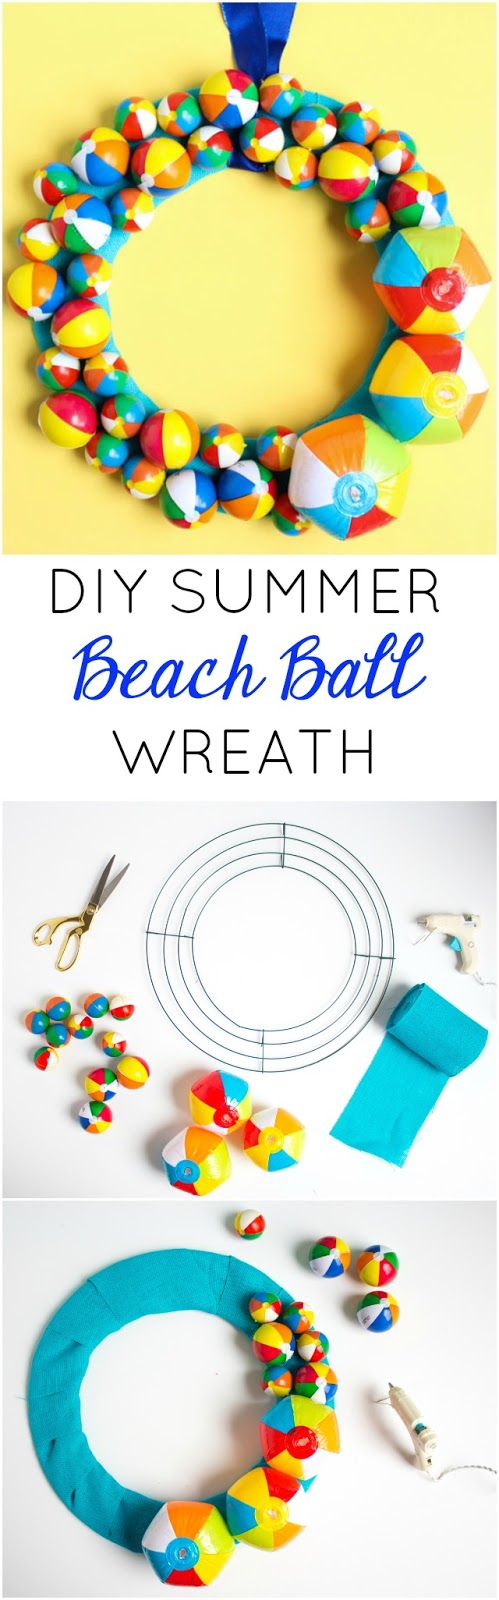 Such a fun summer wreath! Make this with a variety of mini beach balls - perfect pool party decoration too!